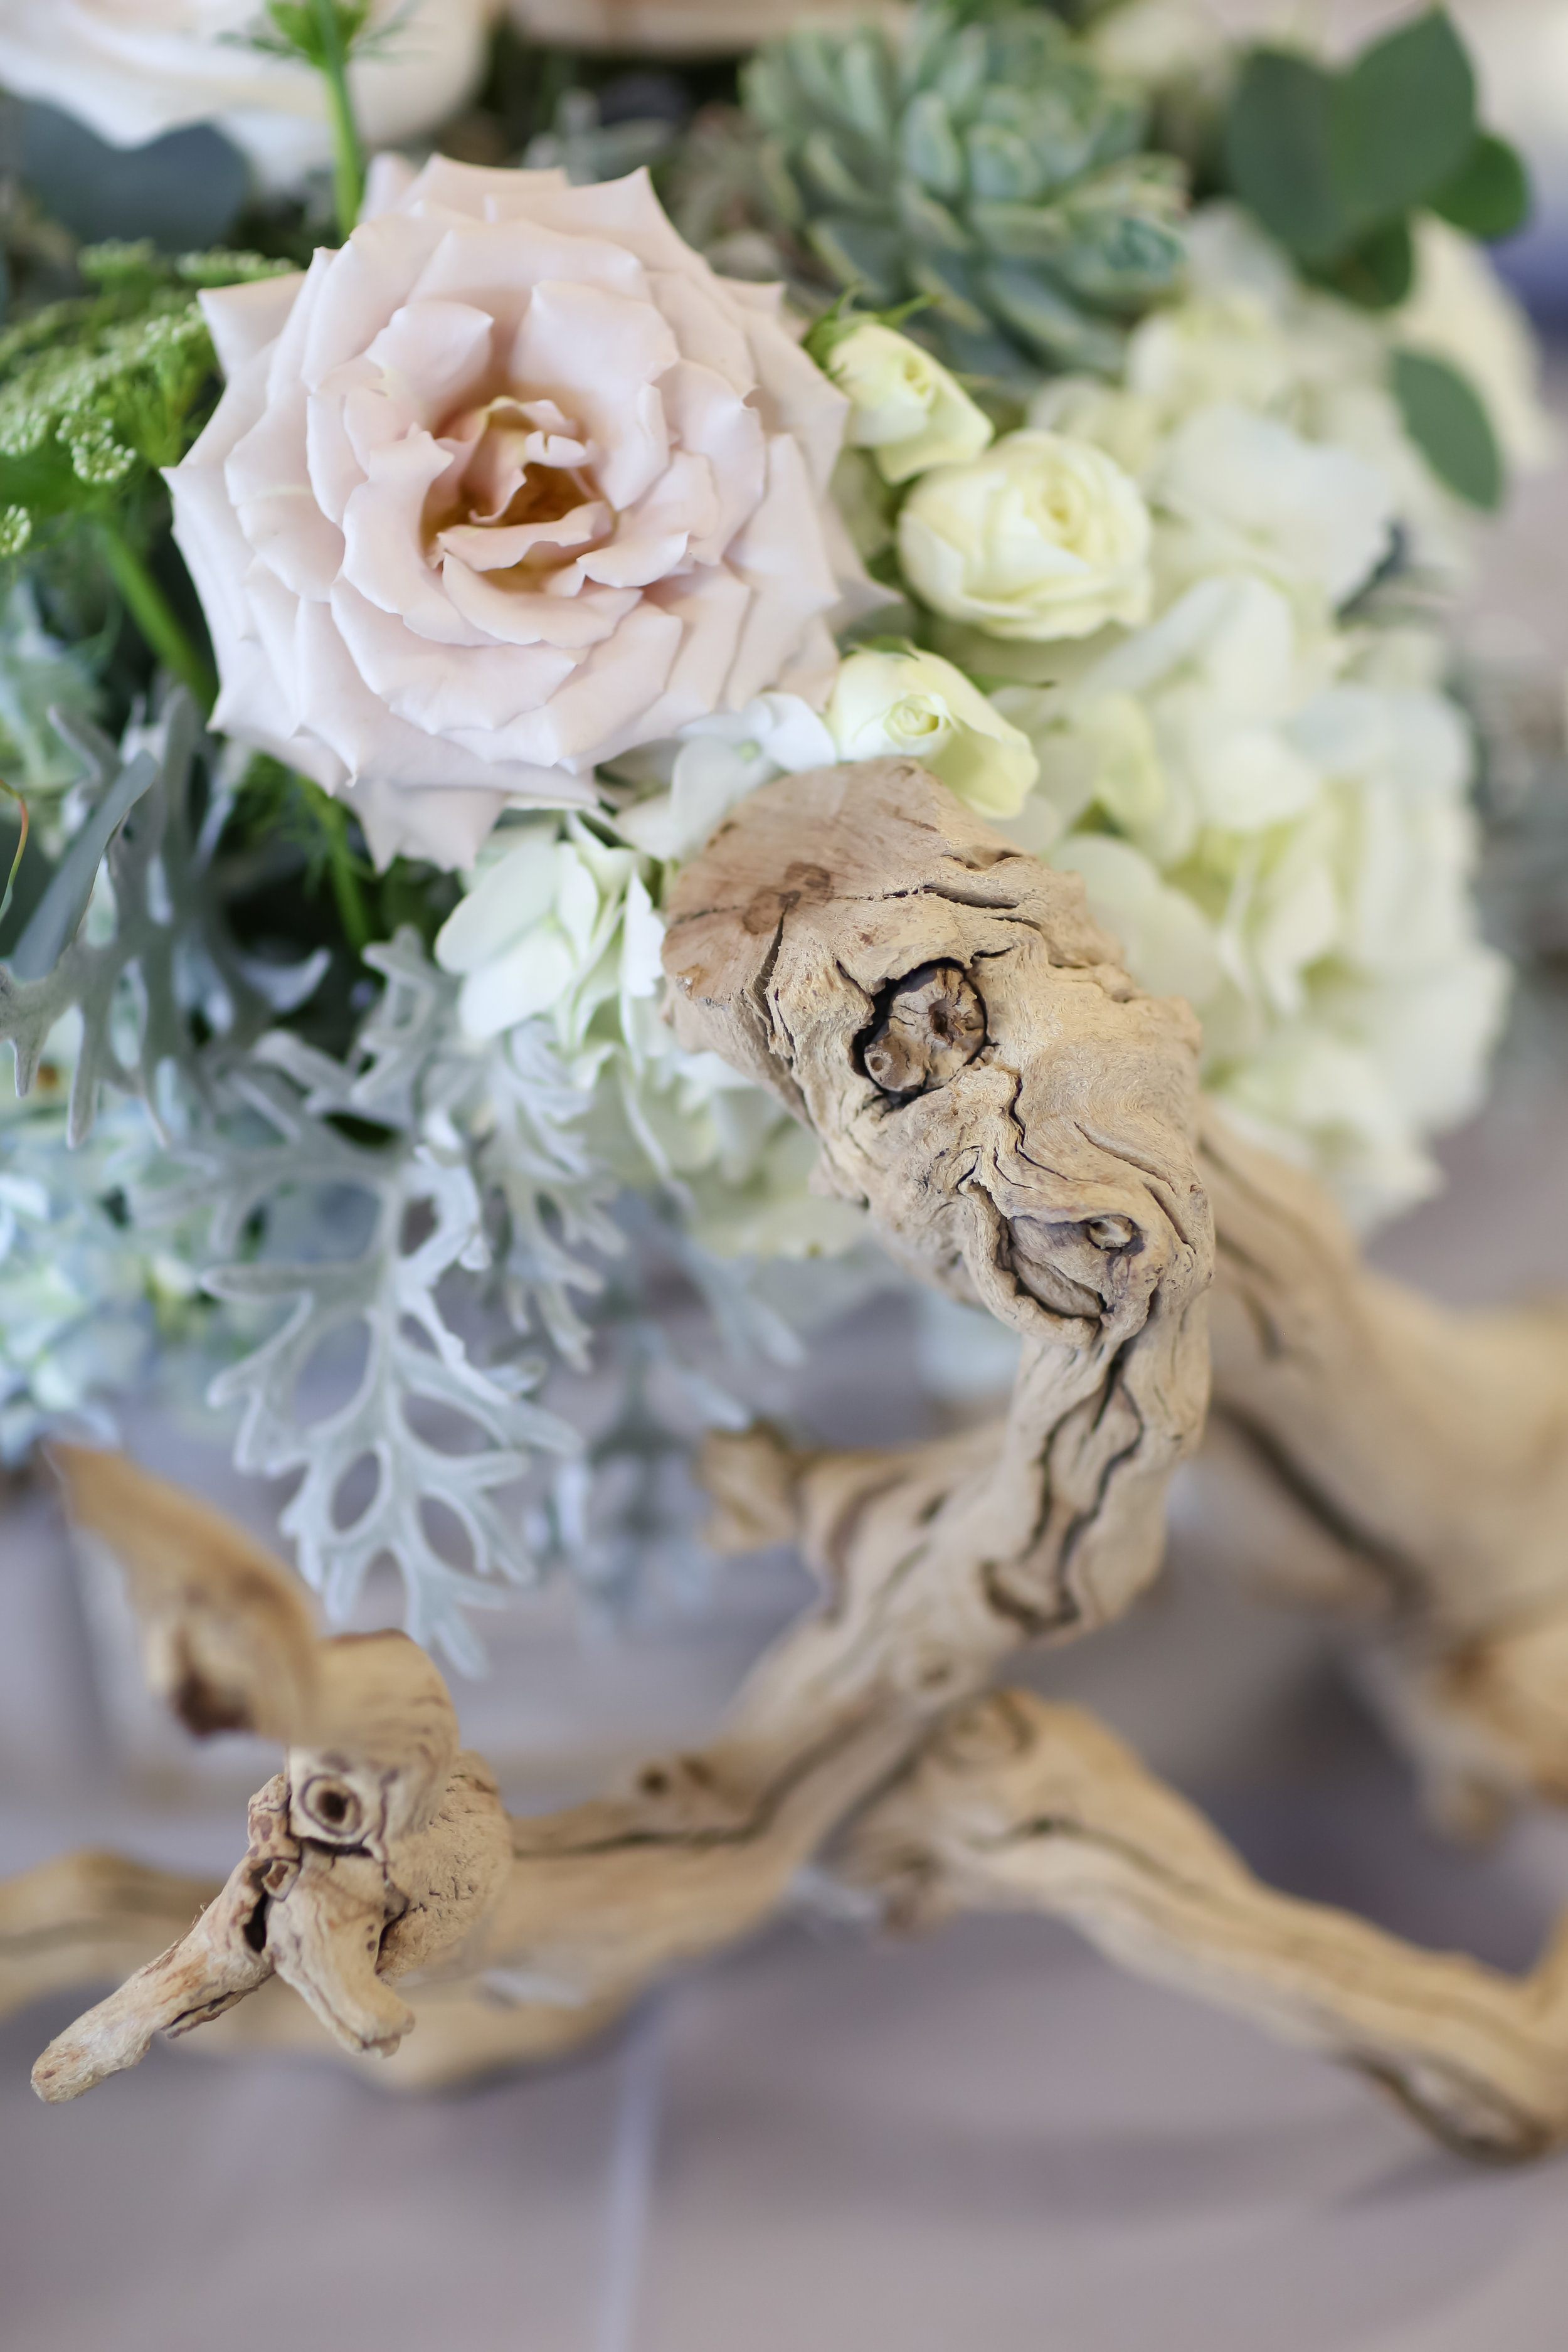 Driftwood accents were incorporated into the floral arrangements.